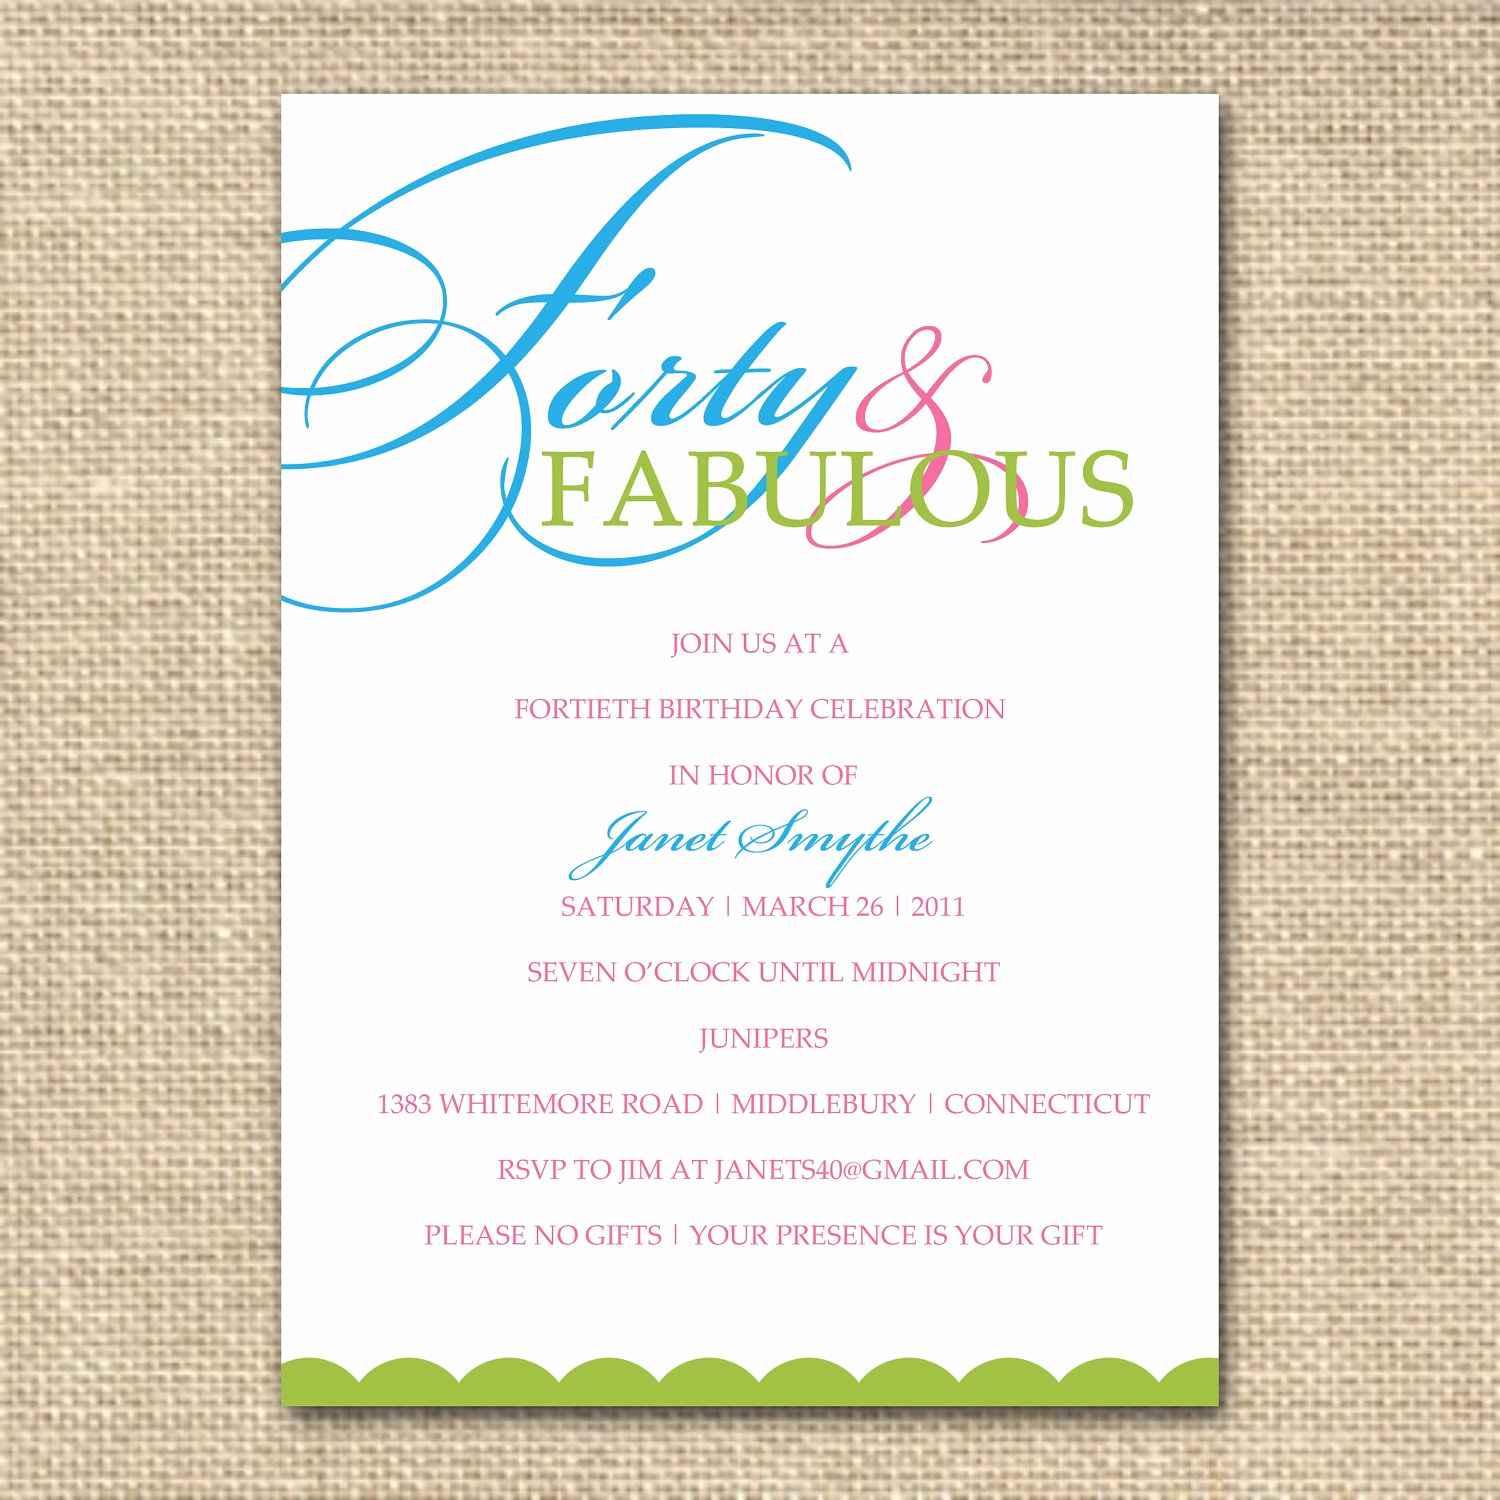 40th Birthday Invitation Wording Funny Luxury 40th Birthday Invitation Wording Designs Ideas